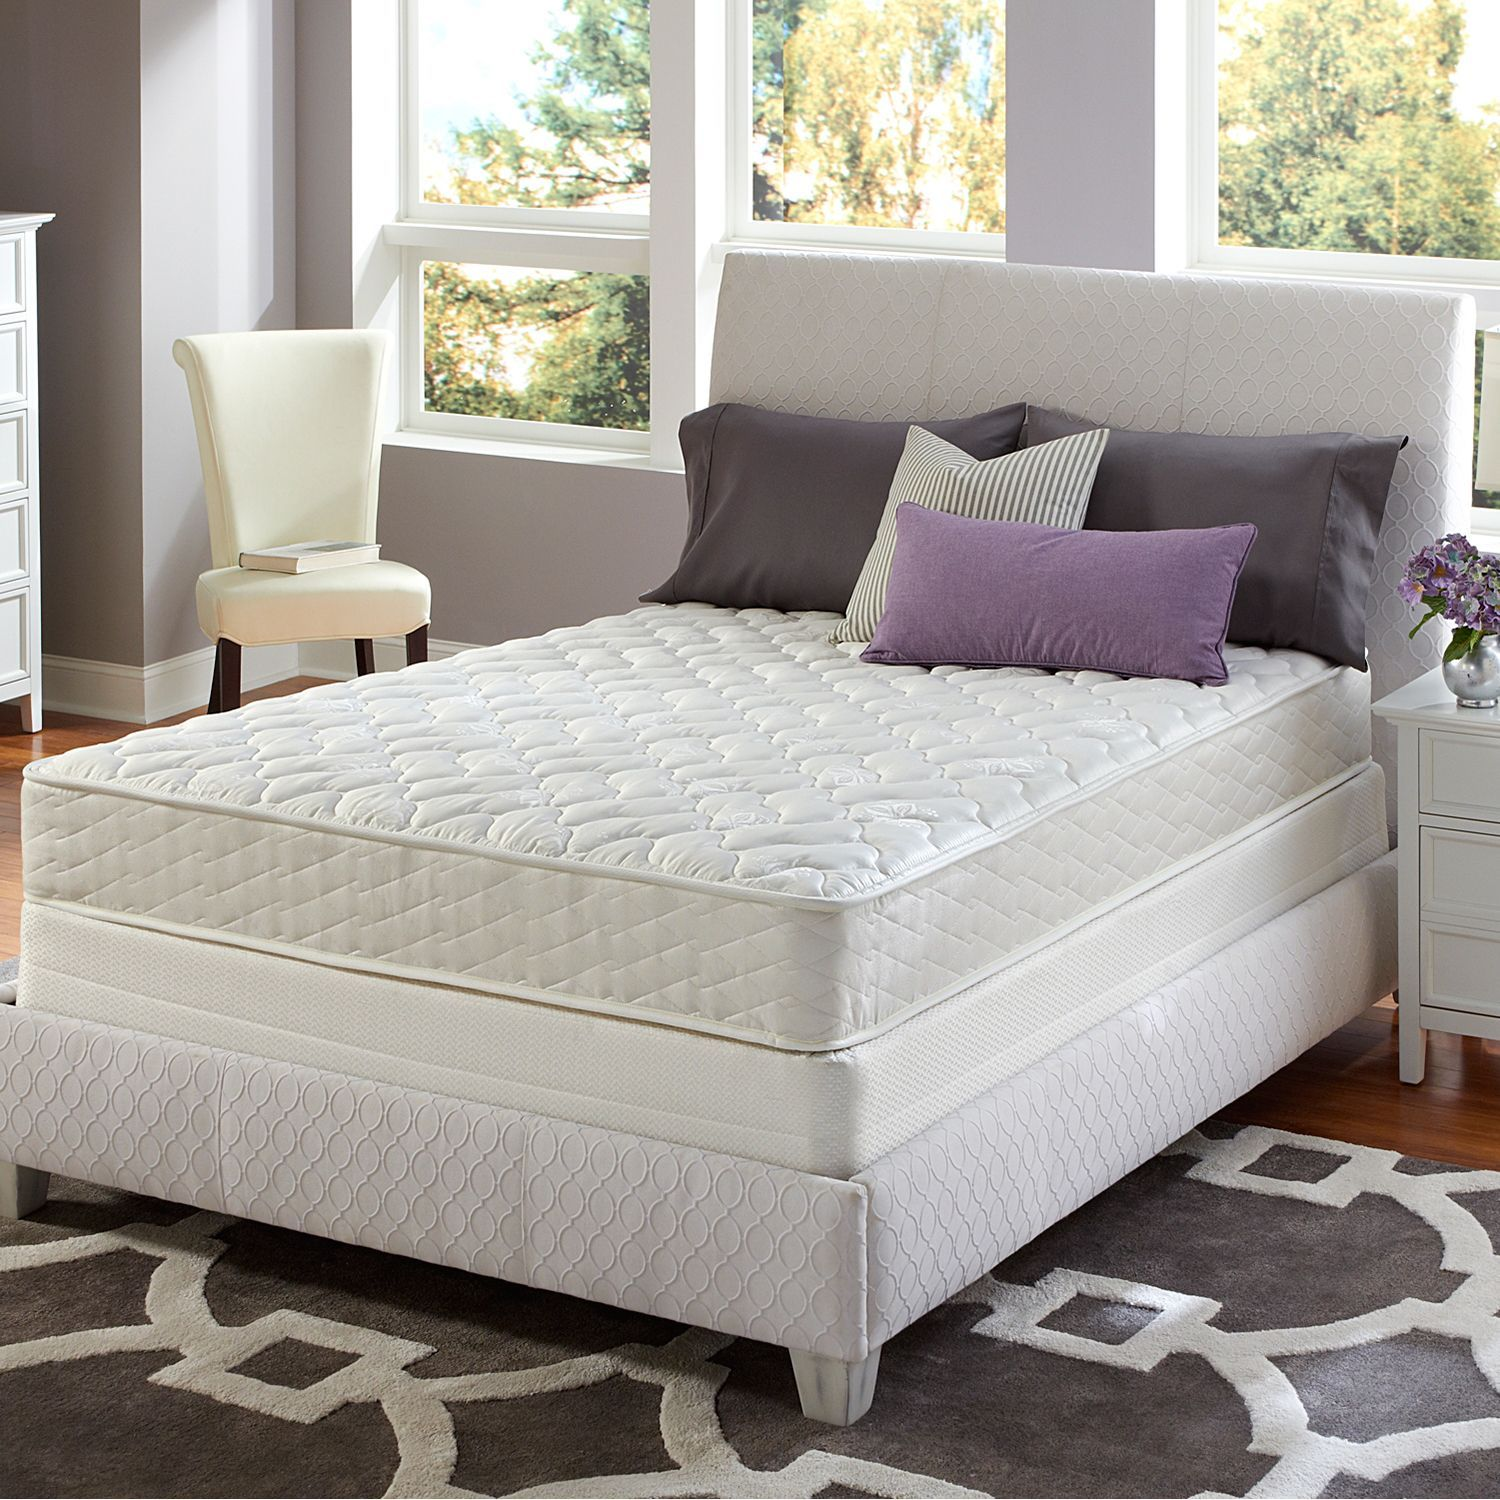 Sertapedic Euclid Firm Mattress Set Full Sam S Club Good Reviews And Free Shipping